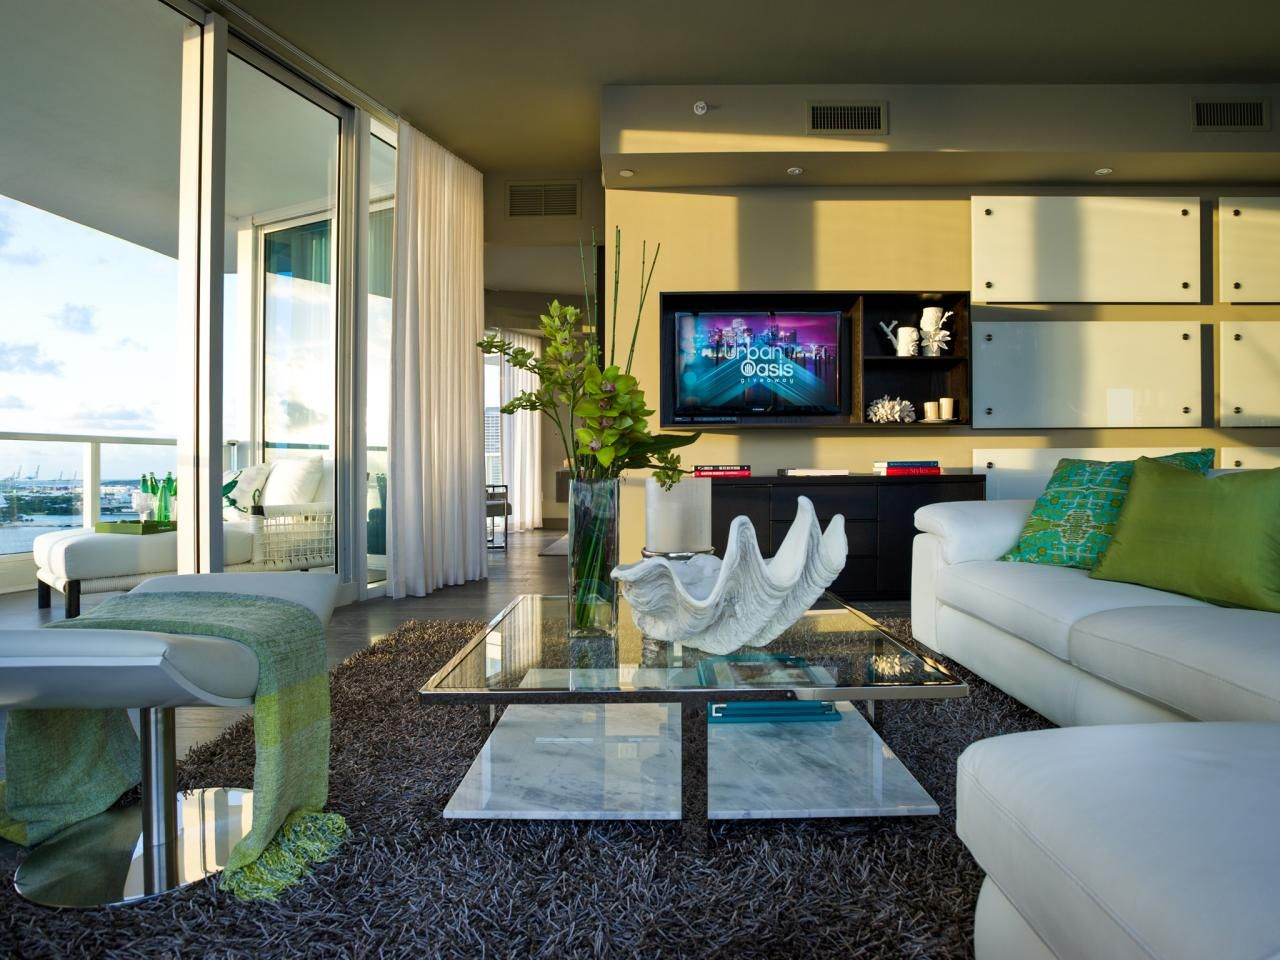 Vote On Your Favorite HGTV Urban Oasis Living Room, From 2010 To 2015.